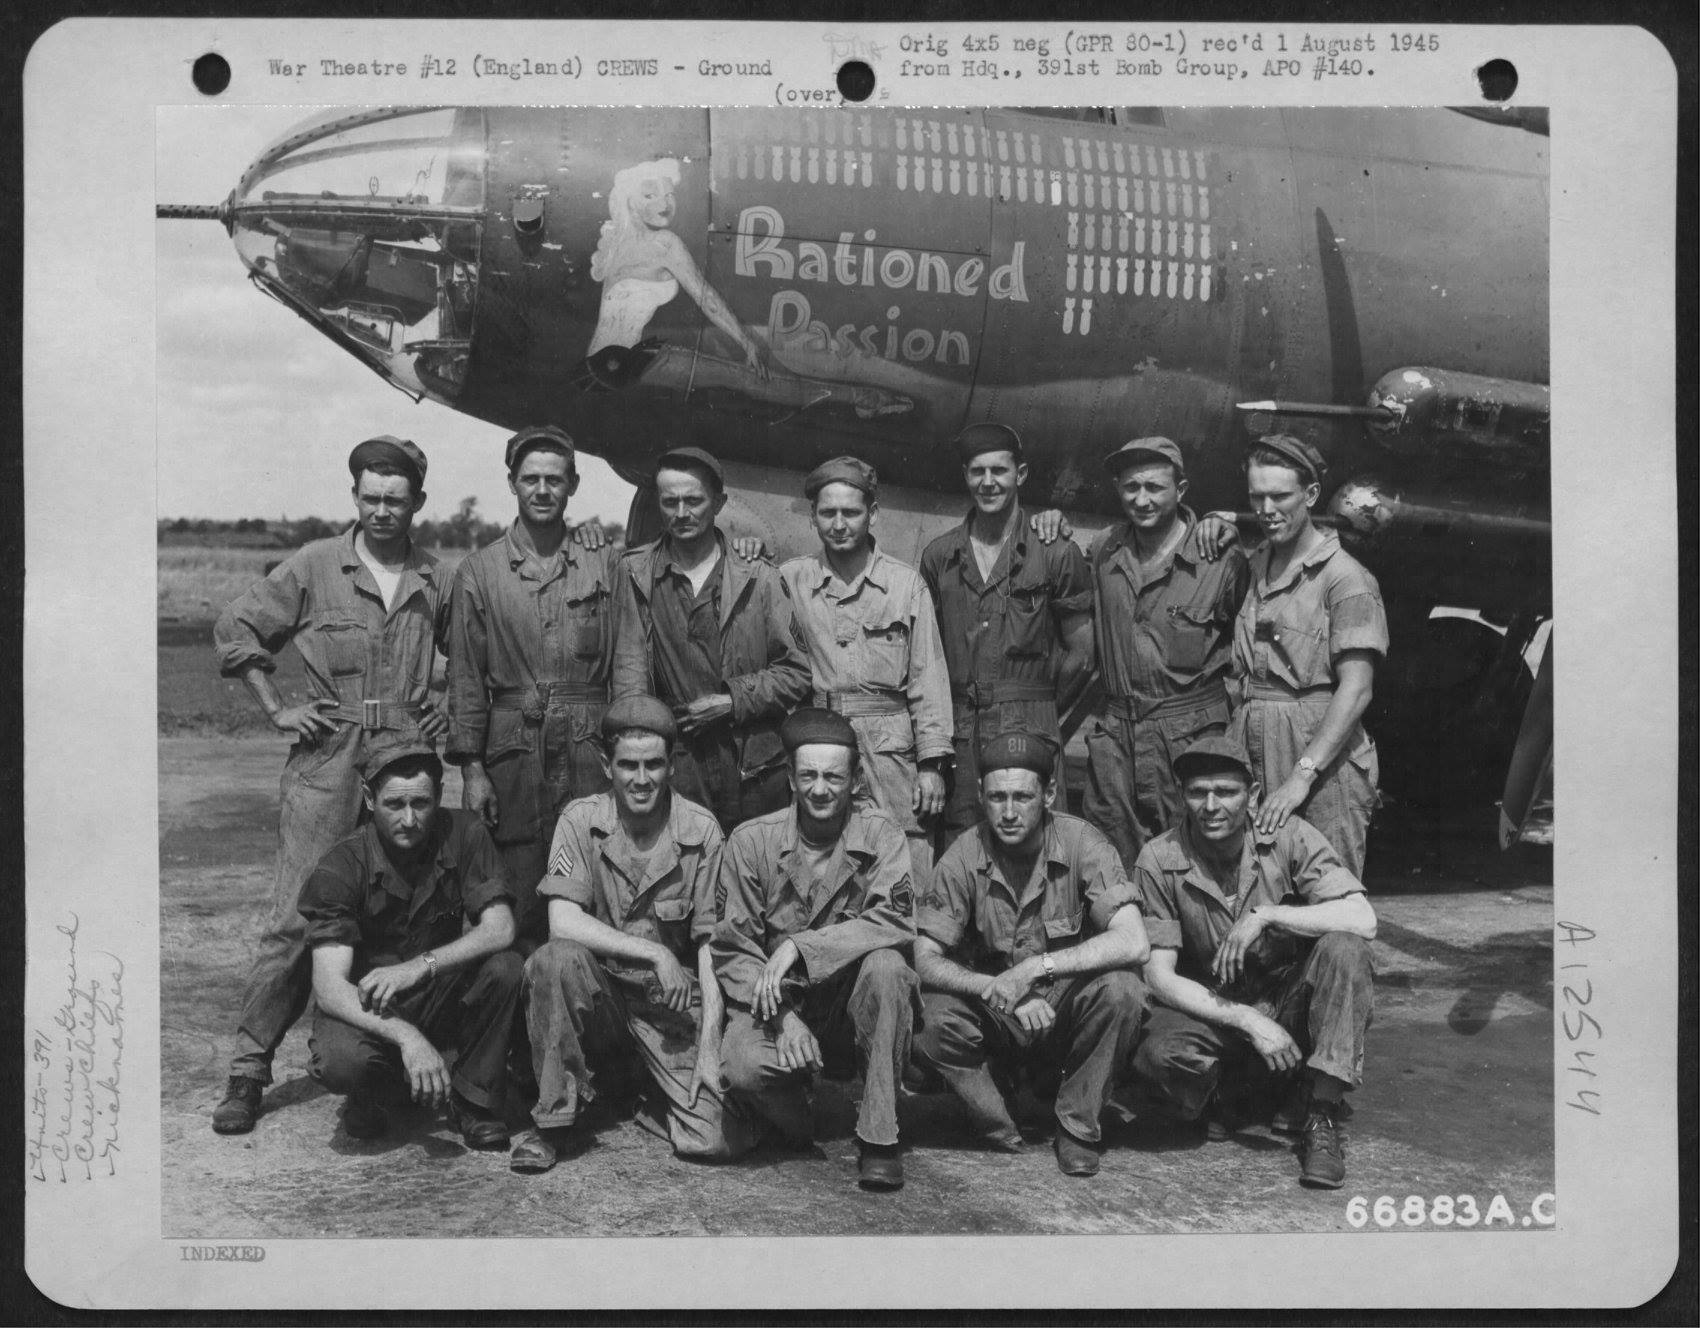 USAAF 42 95812 B 26B Marauder 391BG572BS P2D Rationed Passion with ground crew England 1 Aug 1944 01